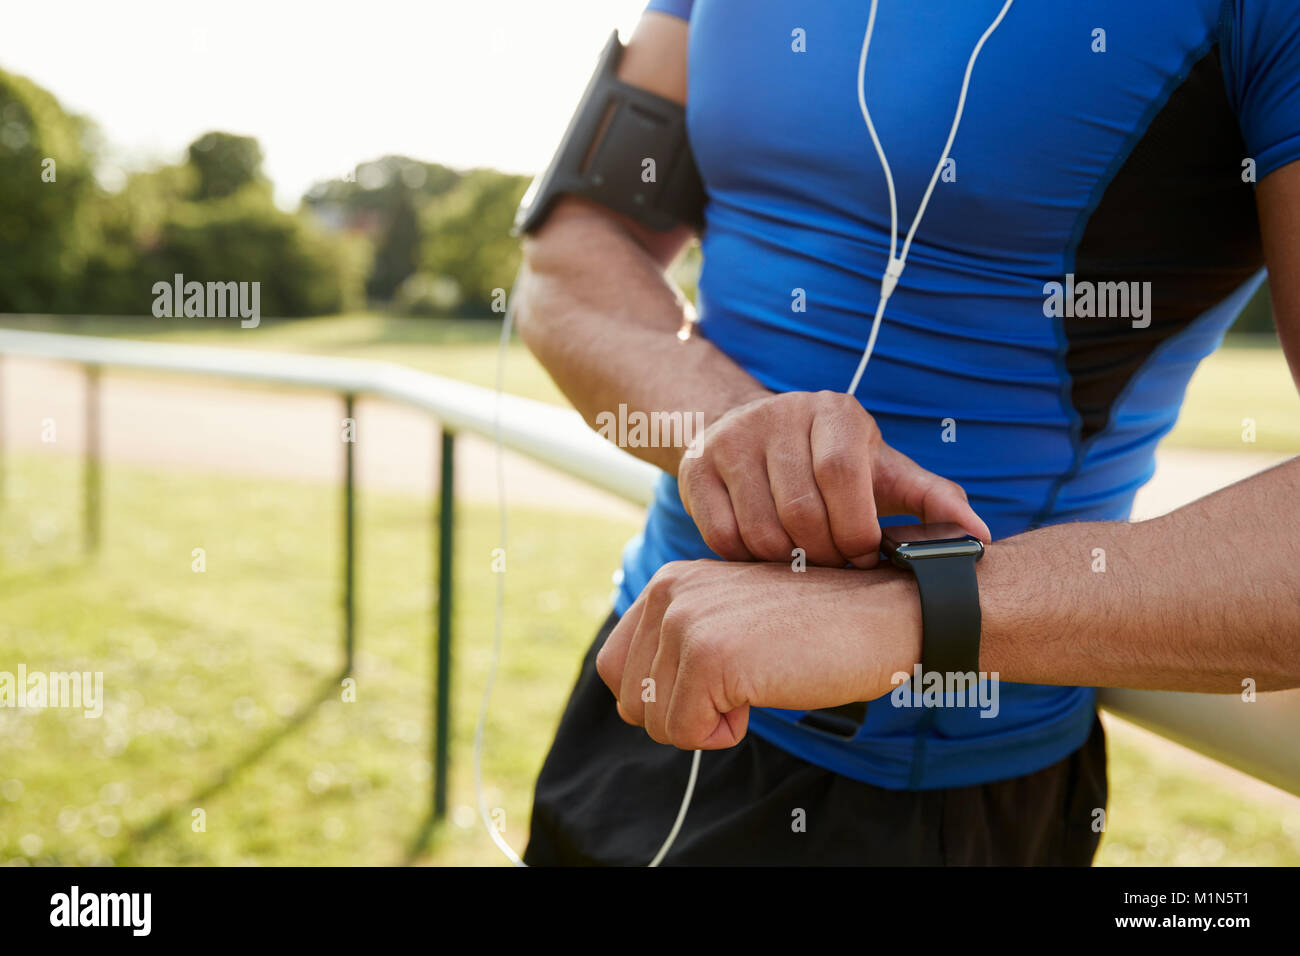 Man at track setting fitness app on smartwatch, mid section Stock Photo